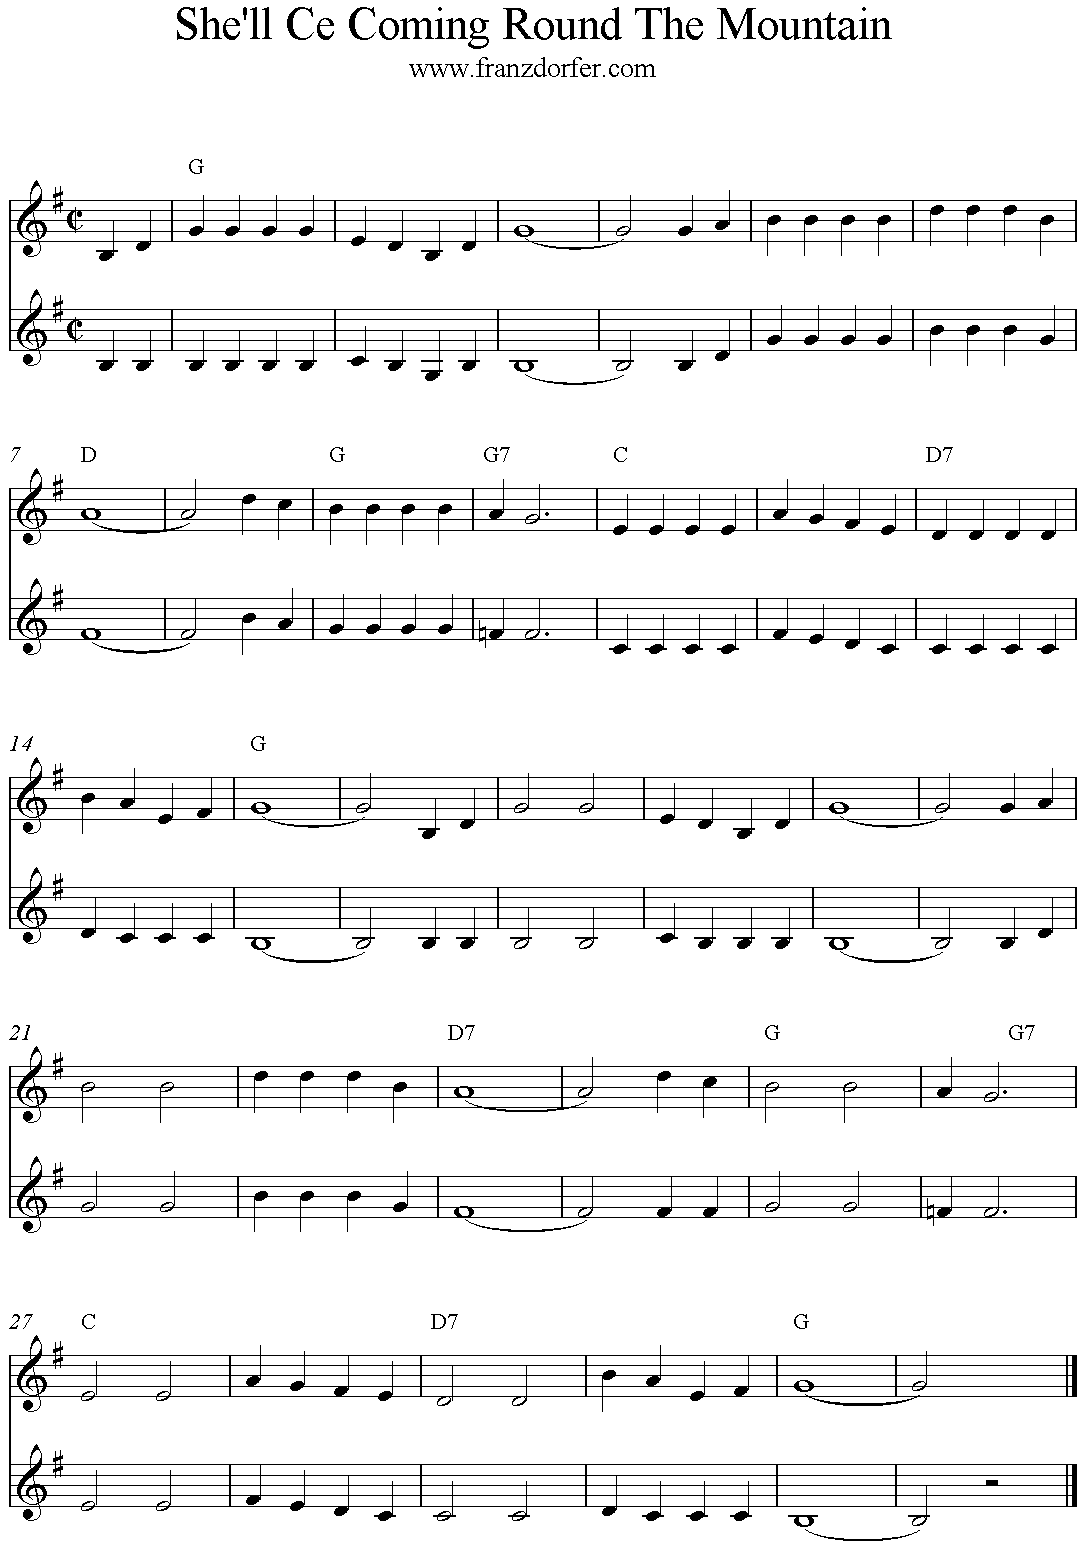 freesheet music PDF freesheet music She ll Ce Coming Round The Mountain